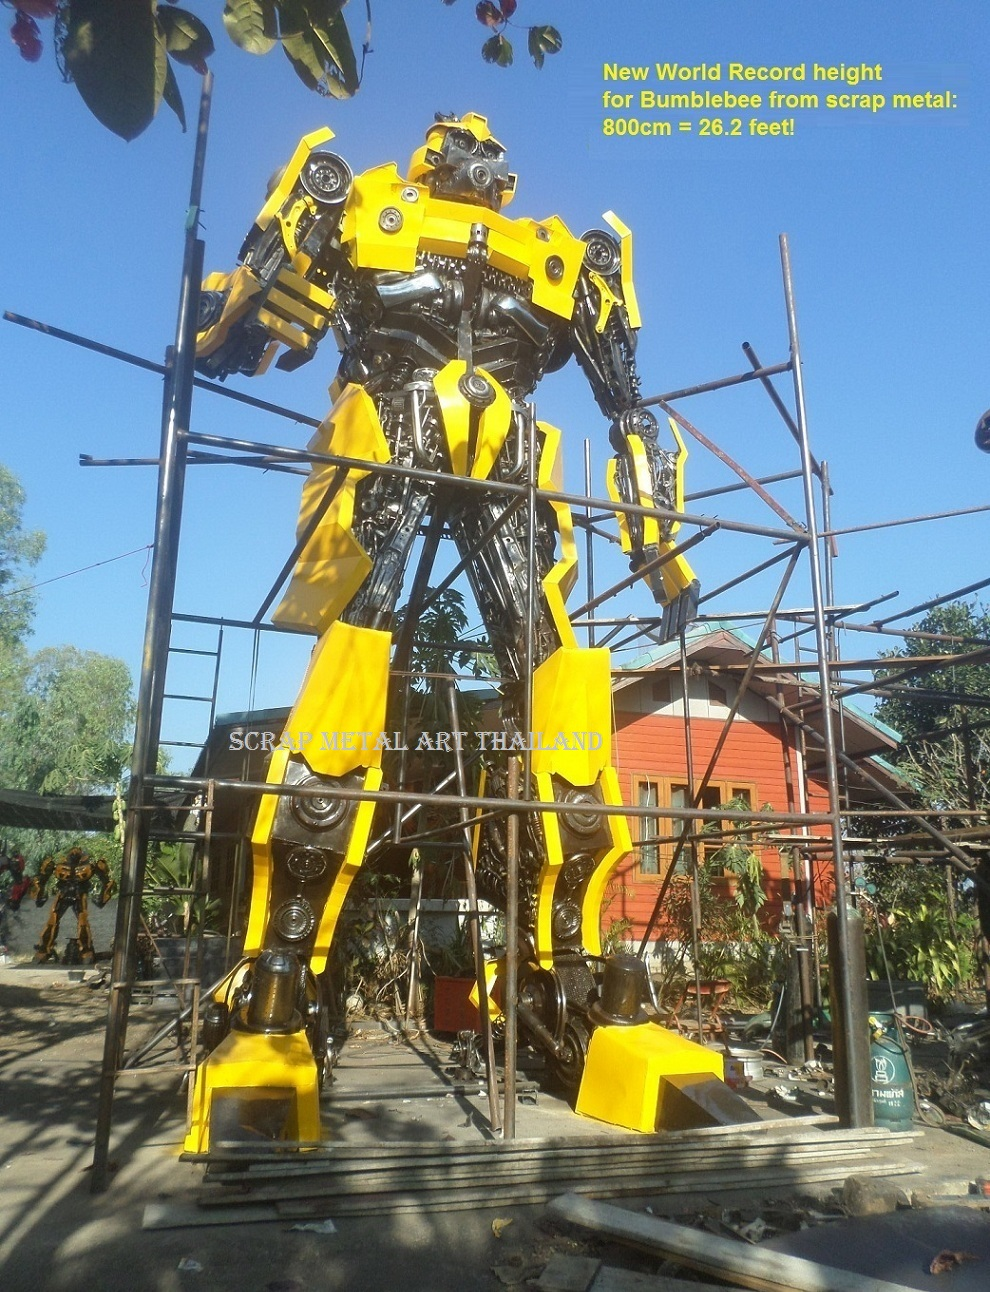 Giant bumblebee statue worlds tallest biggest largest bumblebee sculpture 800cm 26ft